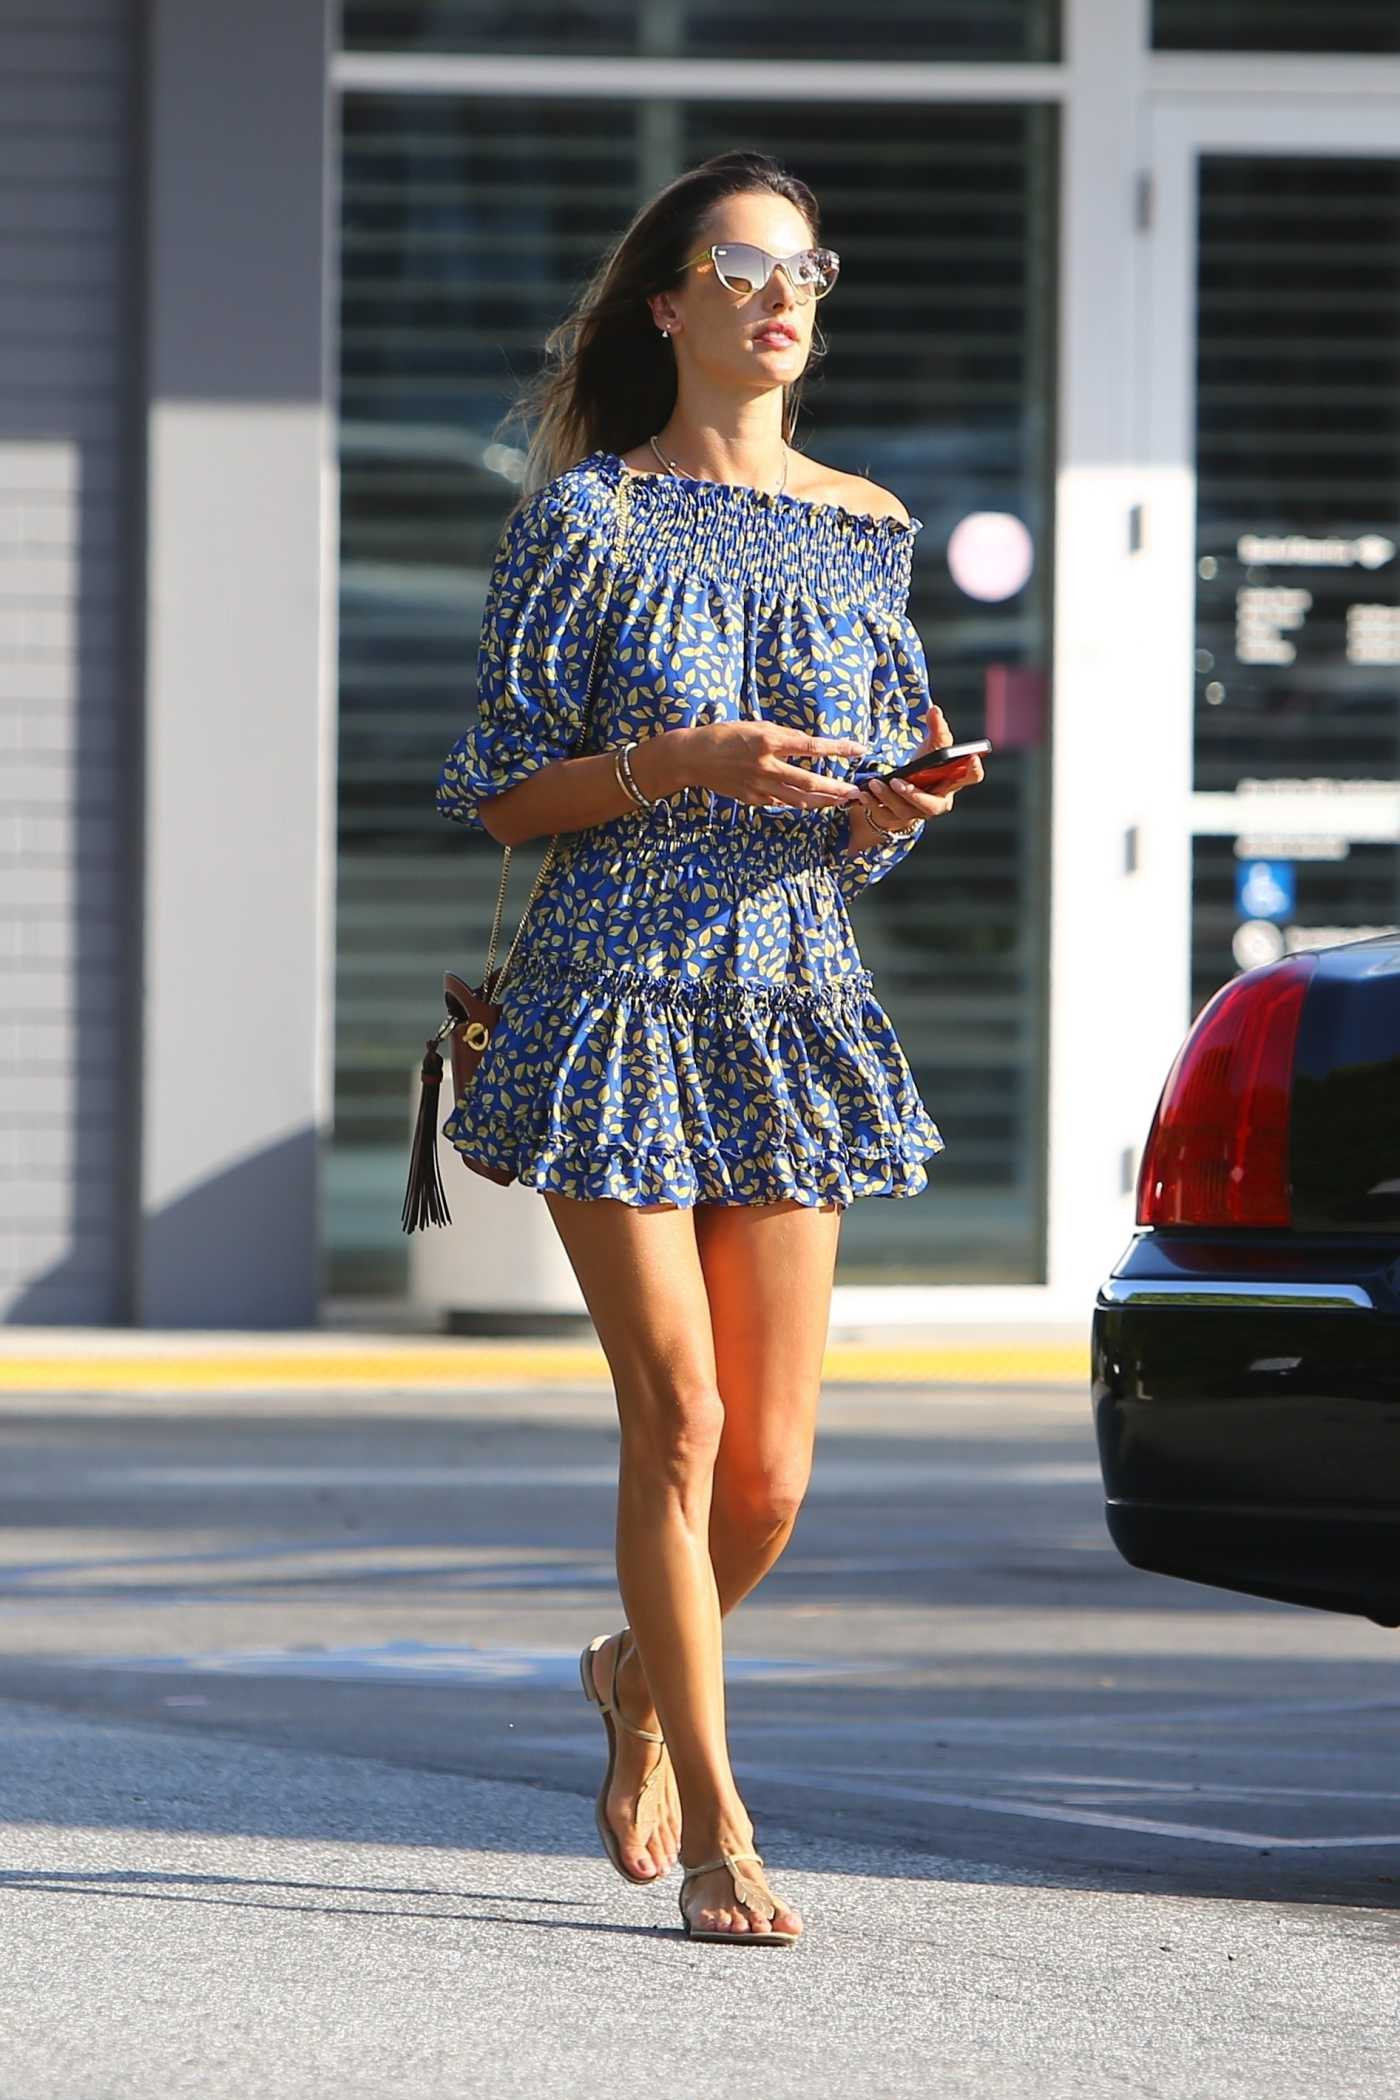 Alessandra Ambrosio in a Blue Mini Dress Stops by the Bank in Brentwood 09/03/2020